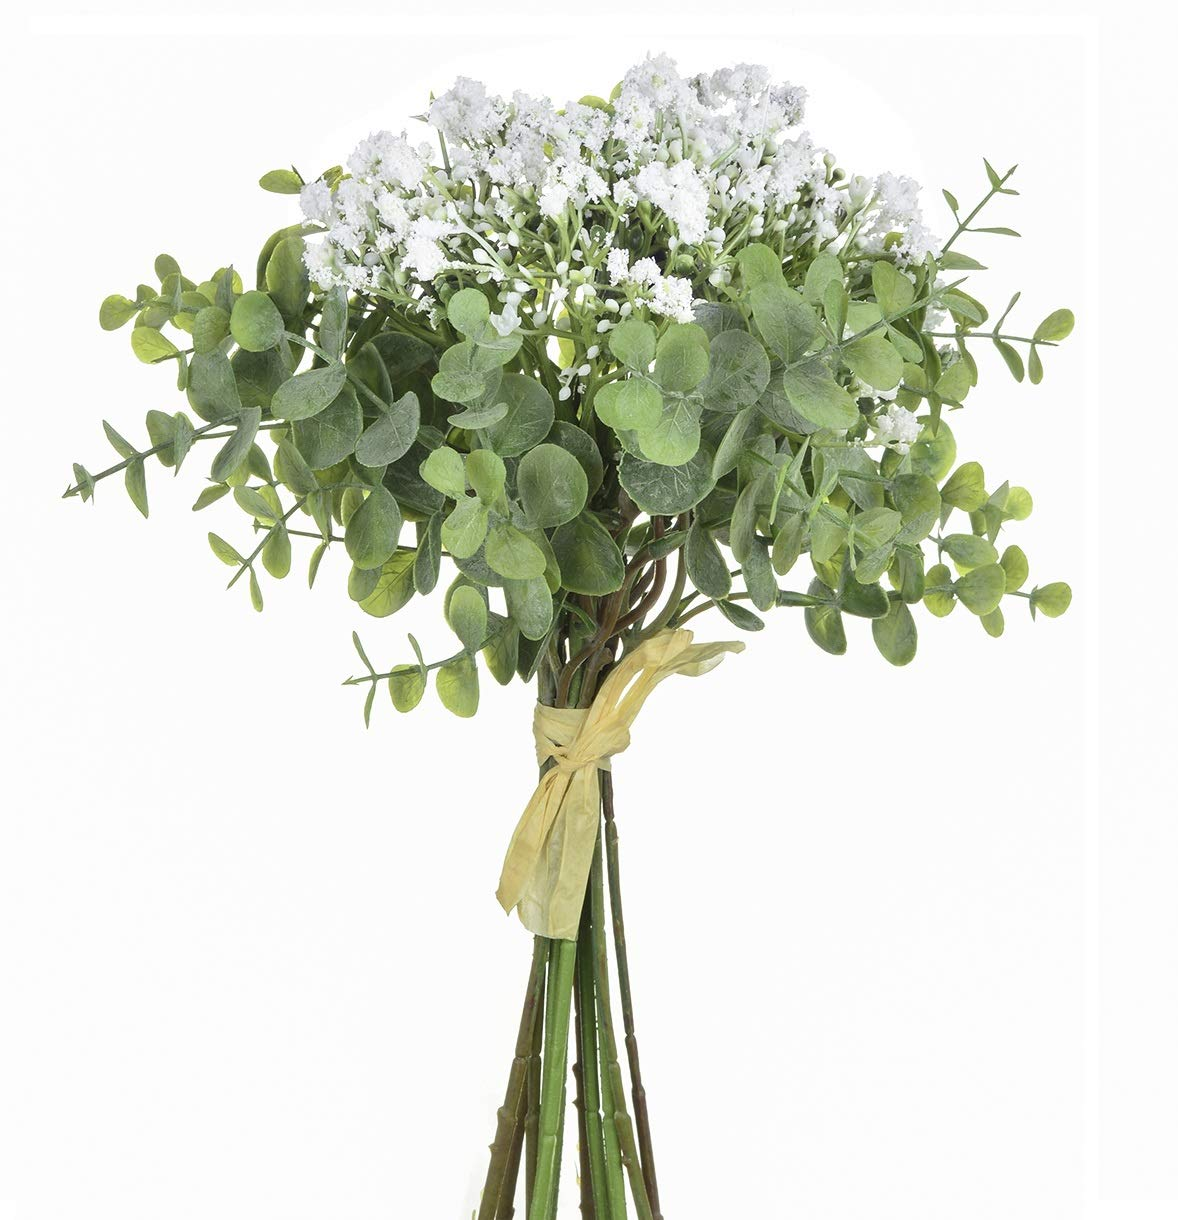 silk flower arrangements baby plum fake flowers pack of 1 flower bouquets,total of 6 baby breath flowers and 6 silver dollar eucalyptus artificial flowers for home office indoor outdoor wedding aisle decoration(white)